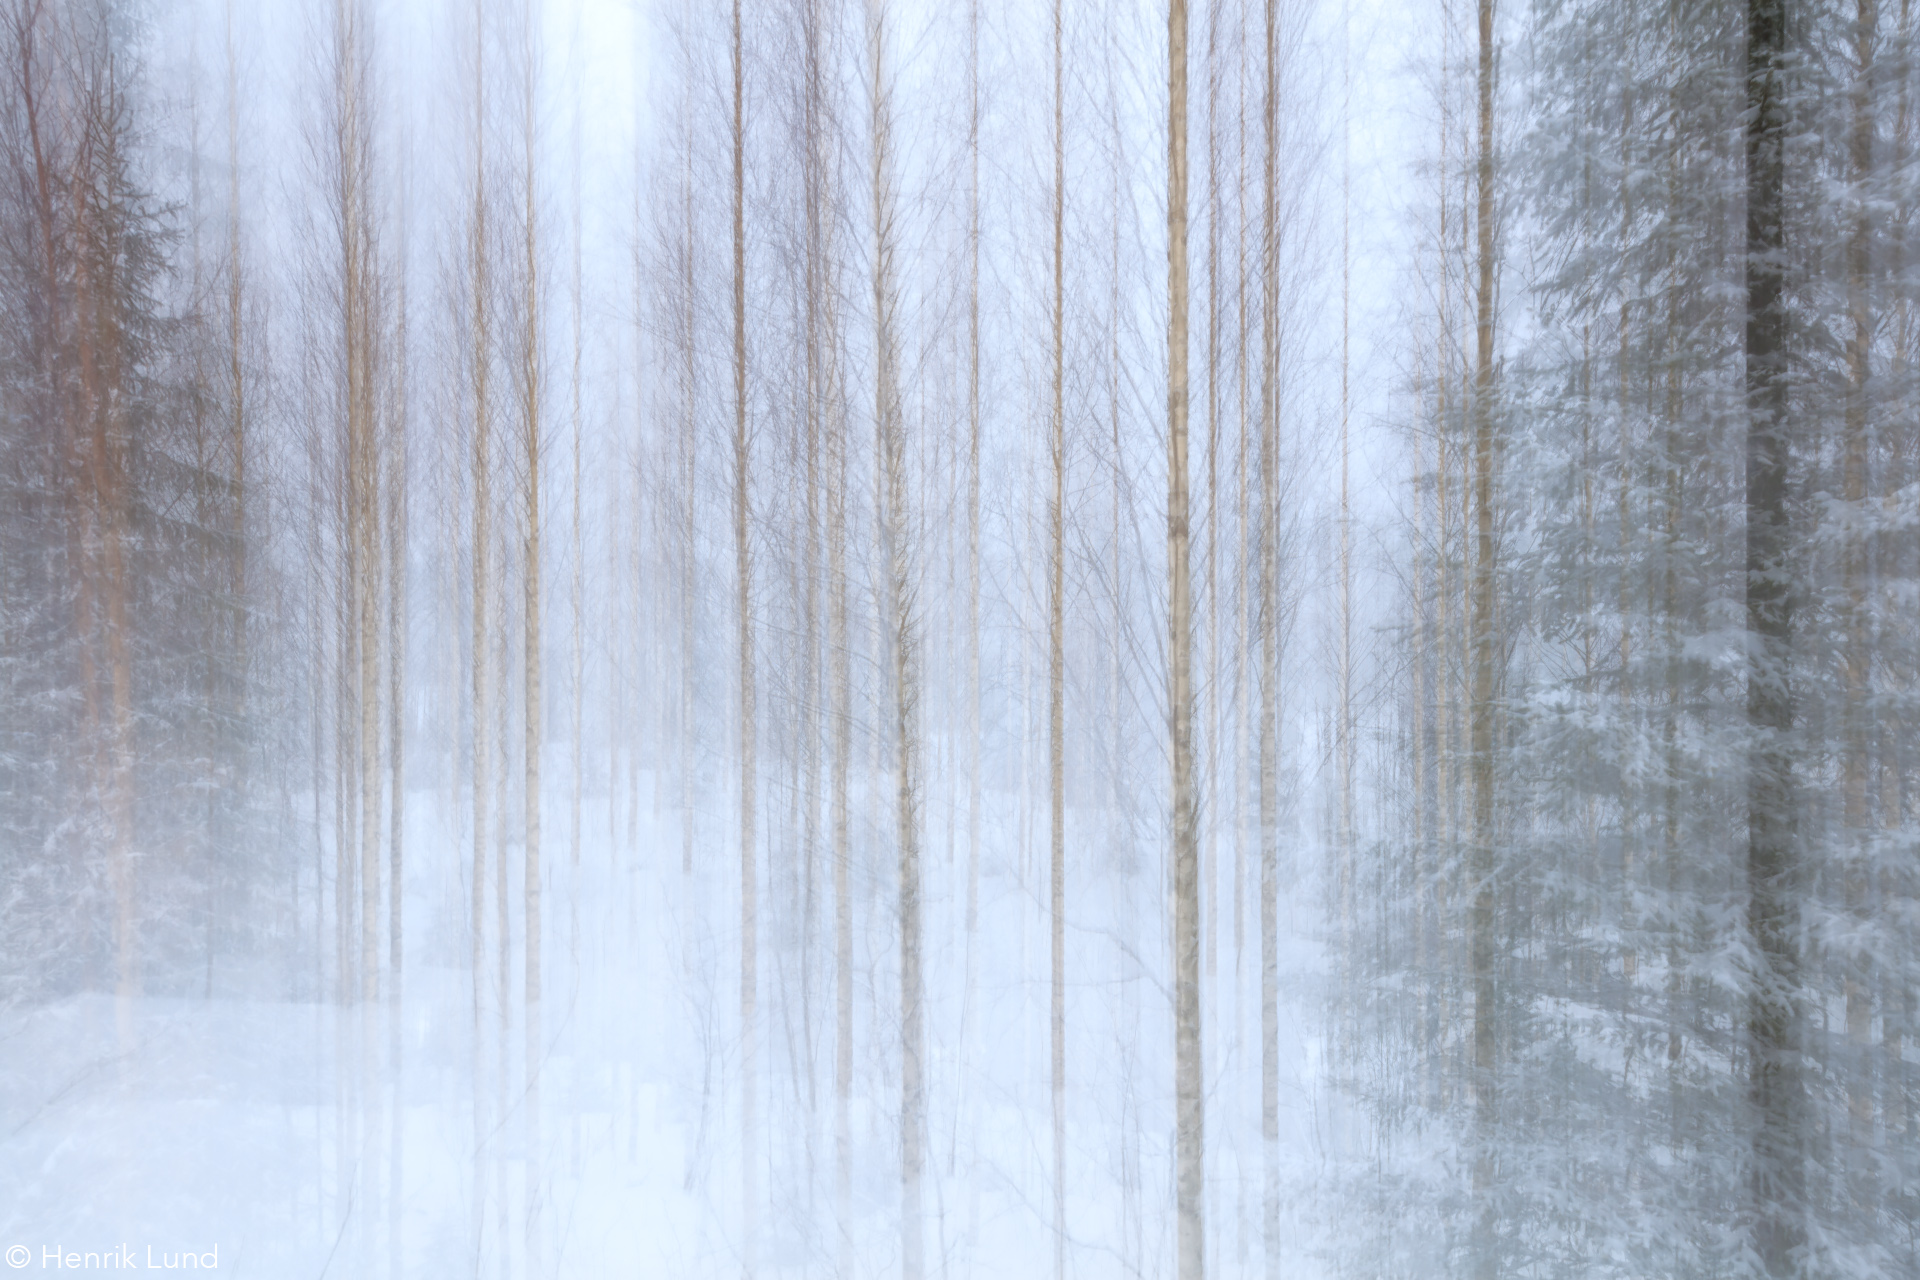 Birch forest panned with TS-E -lens. Hoilola, Joensuu, Finland. February 2017.